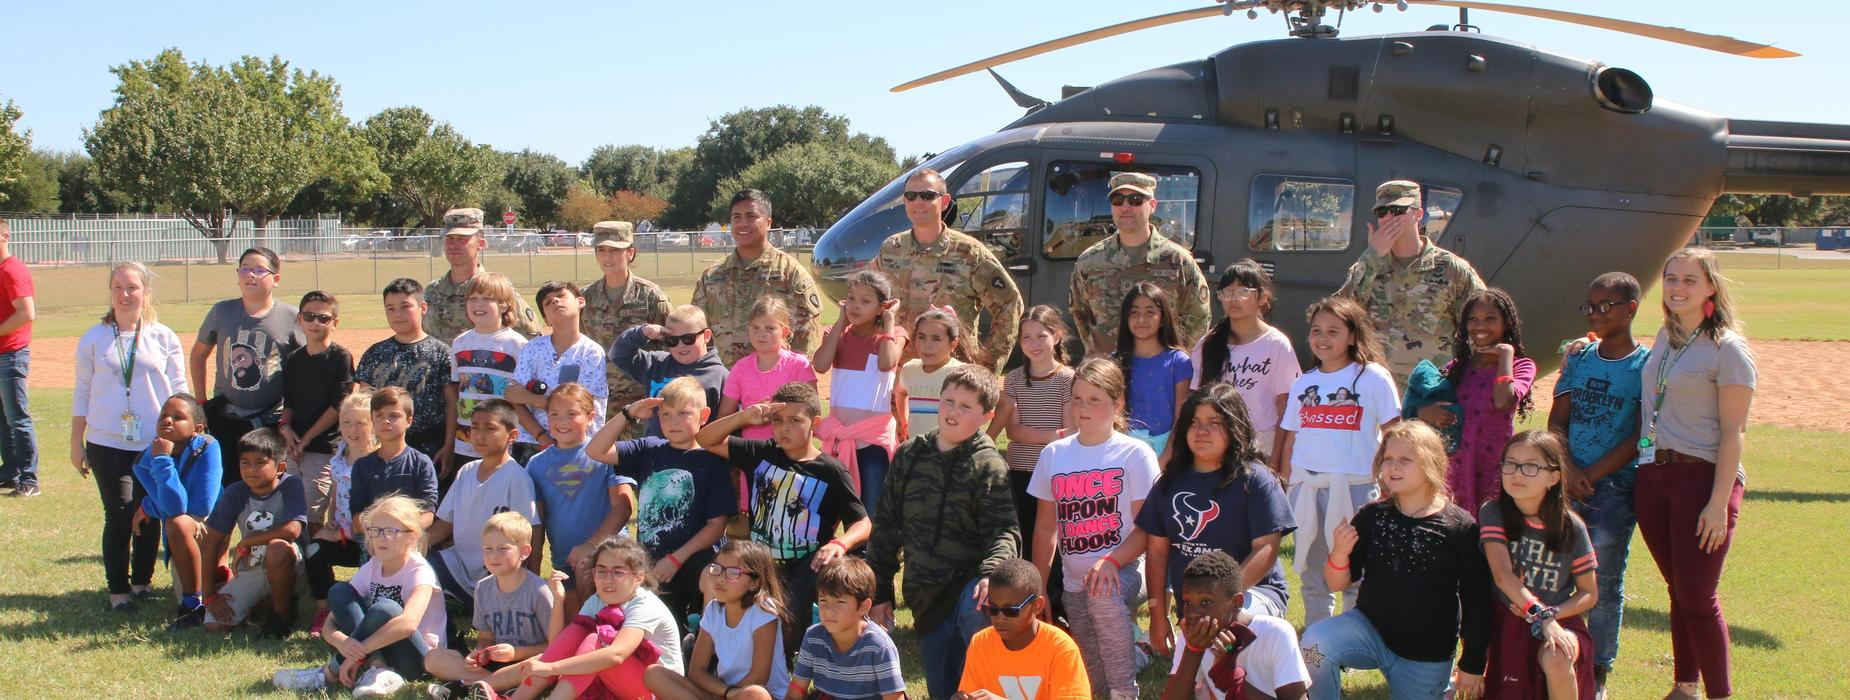 Students in front of helicopter